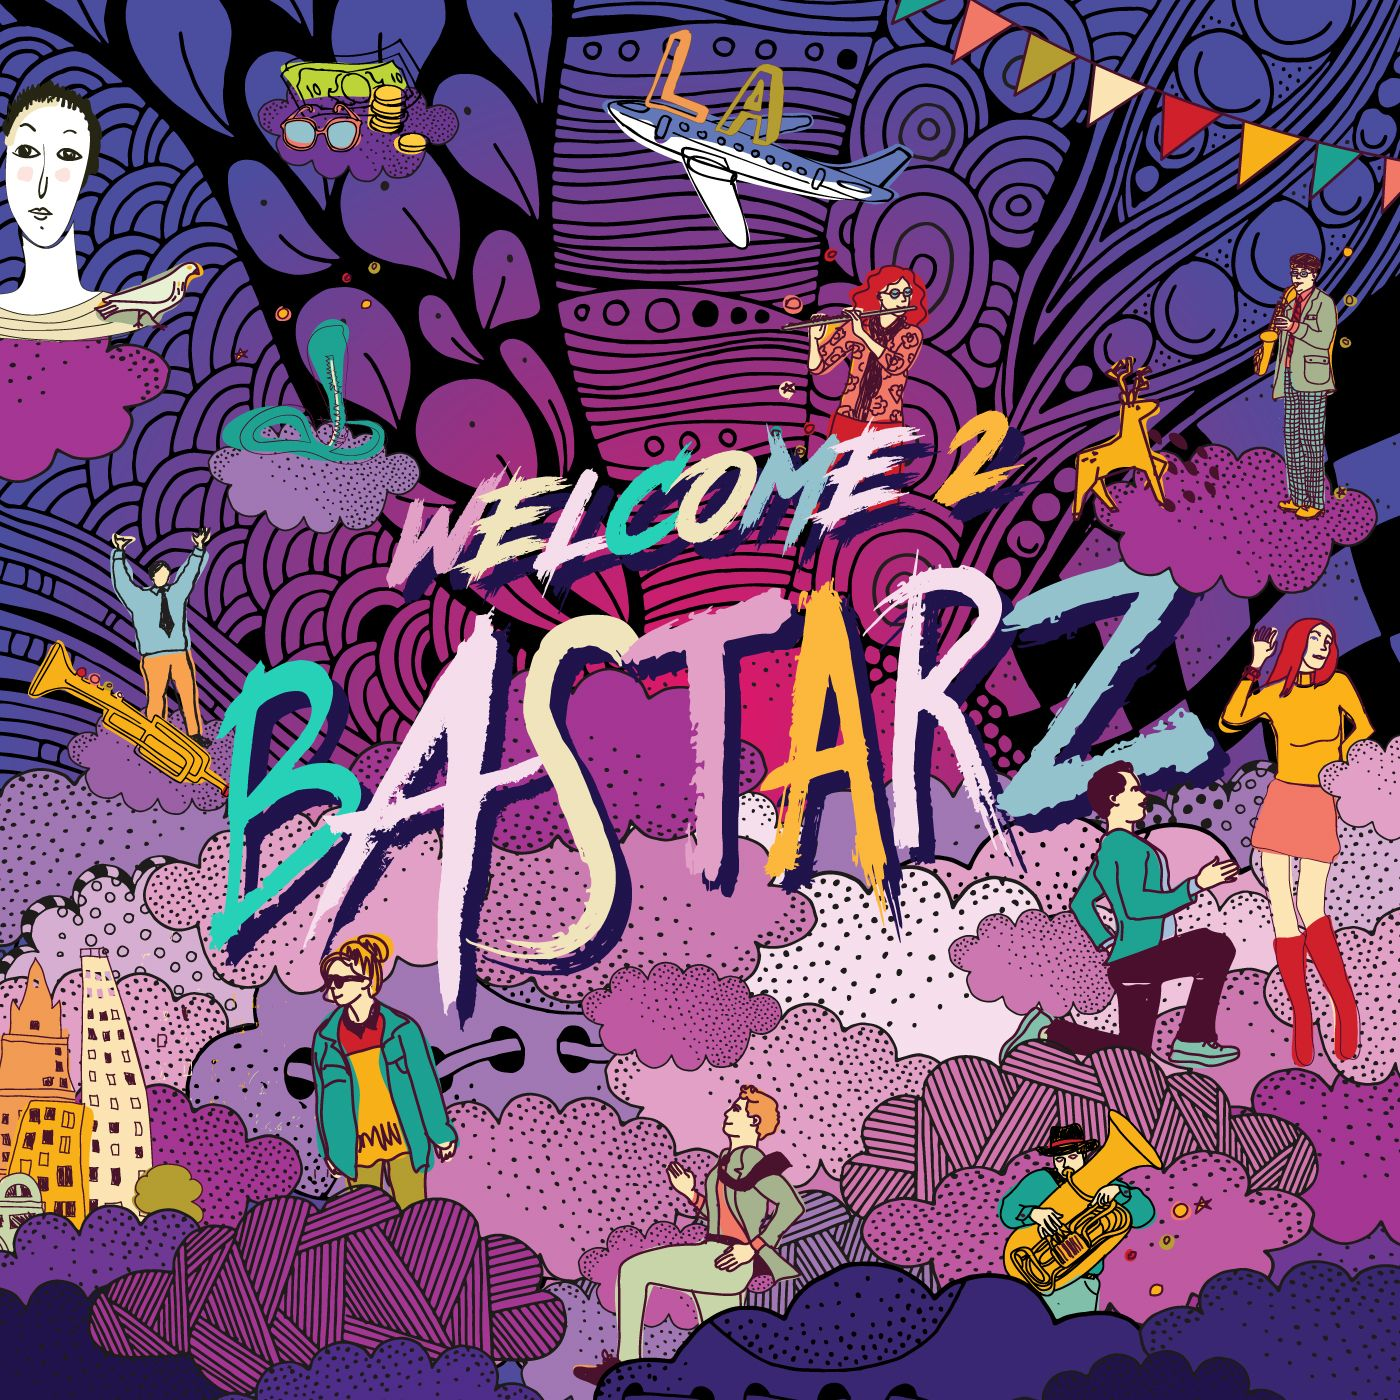 WELCOME 2 BASTARZ 앨범이미지